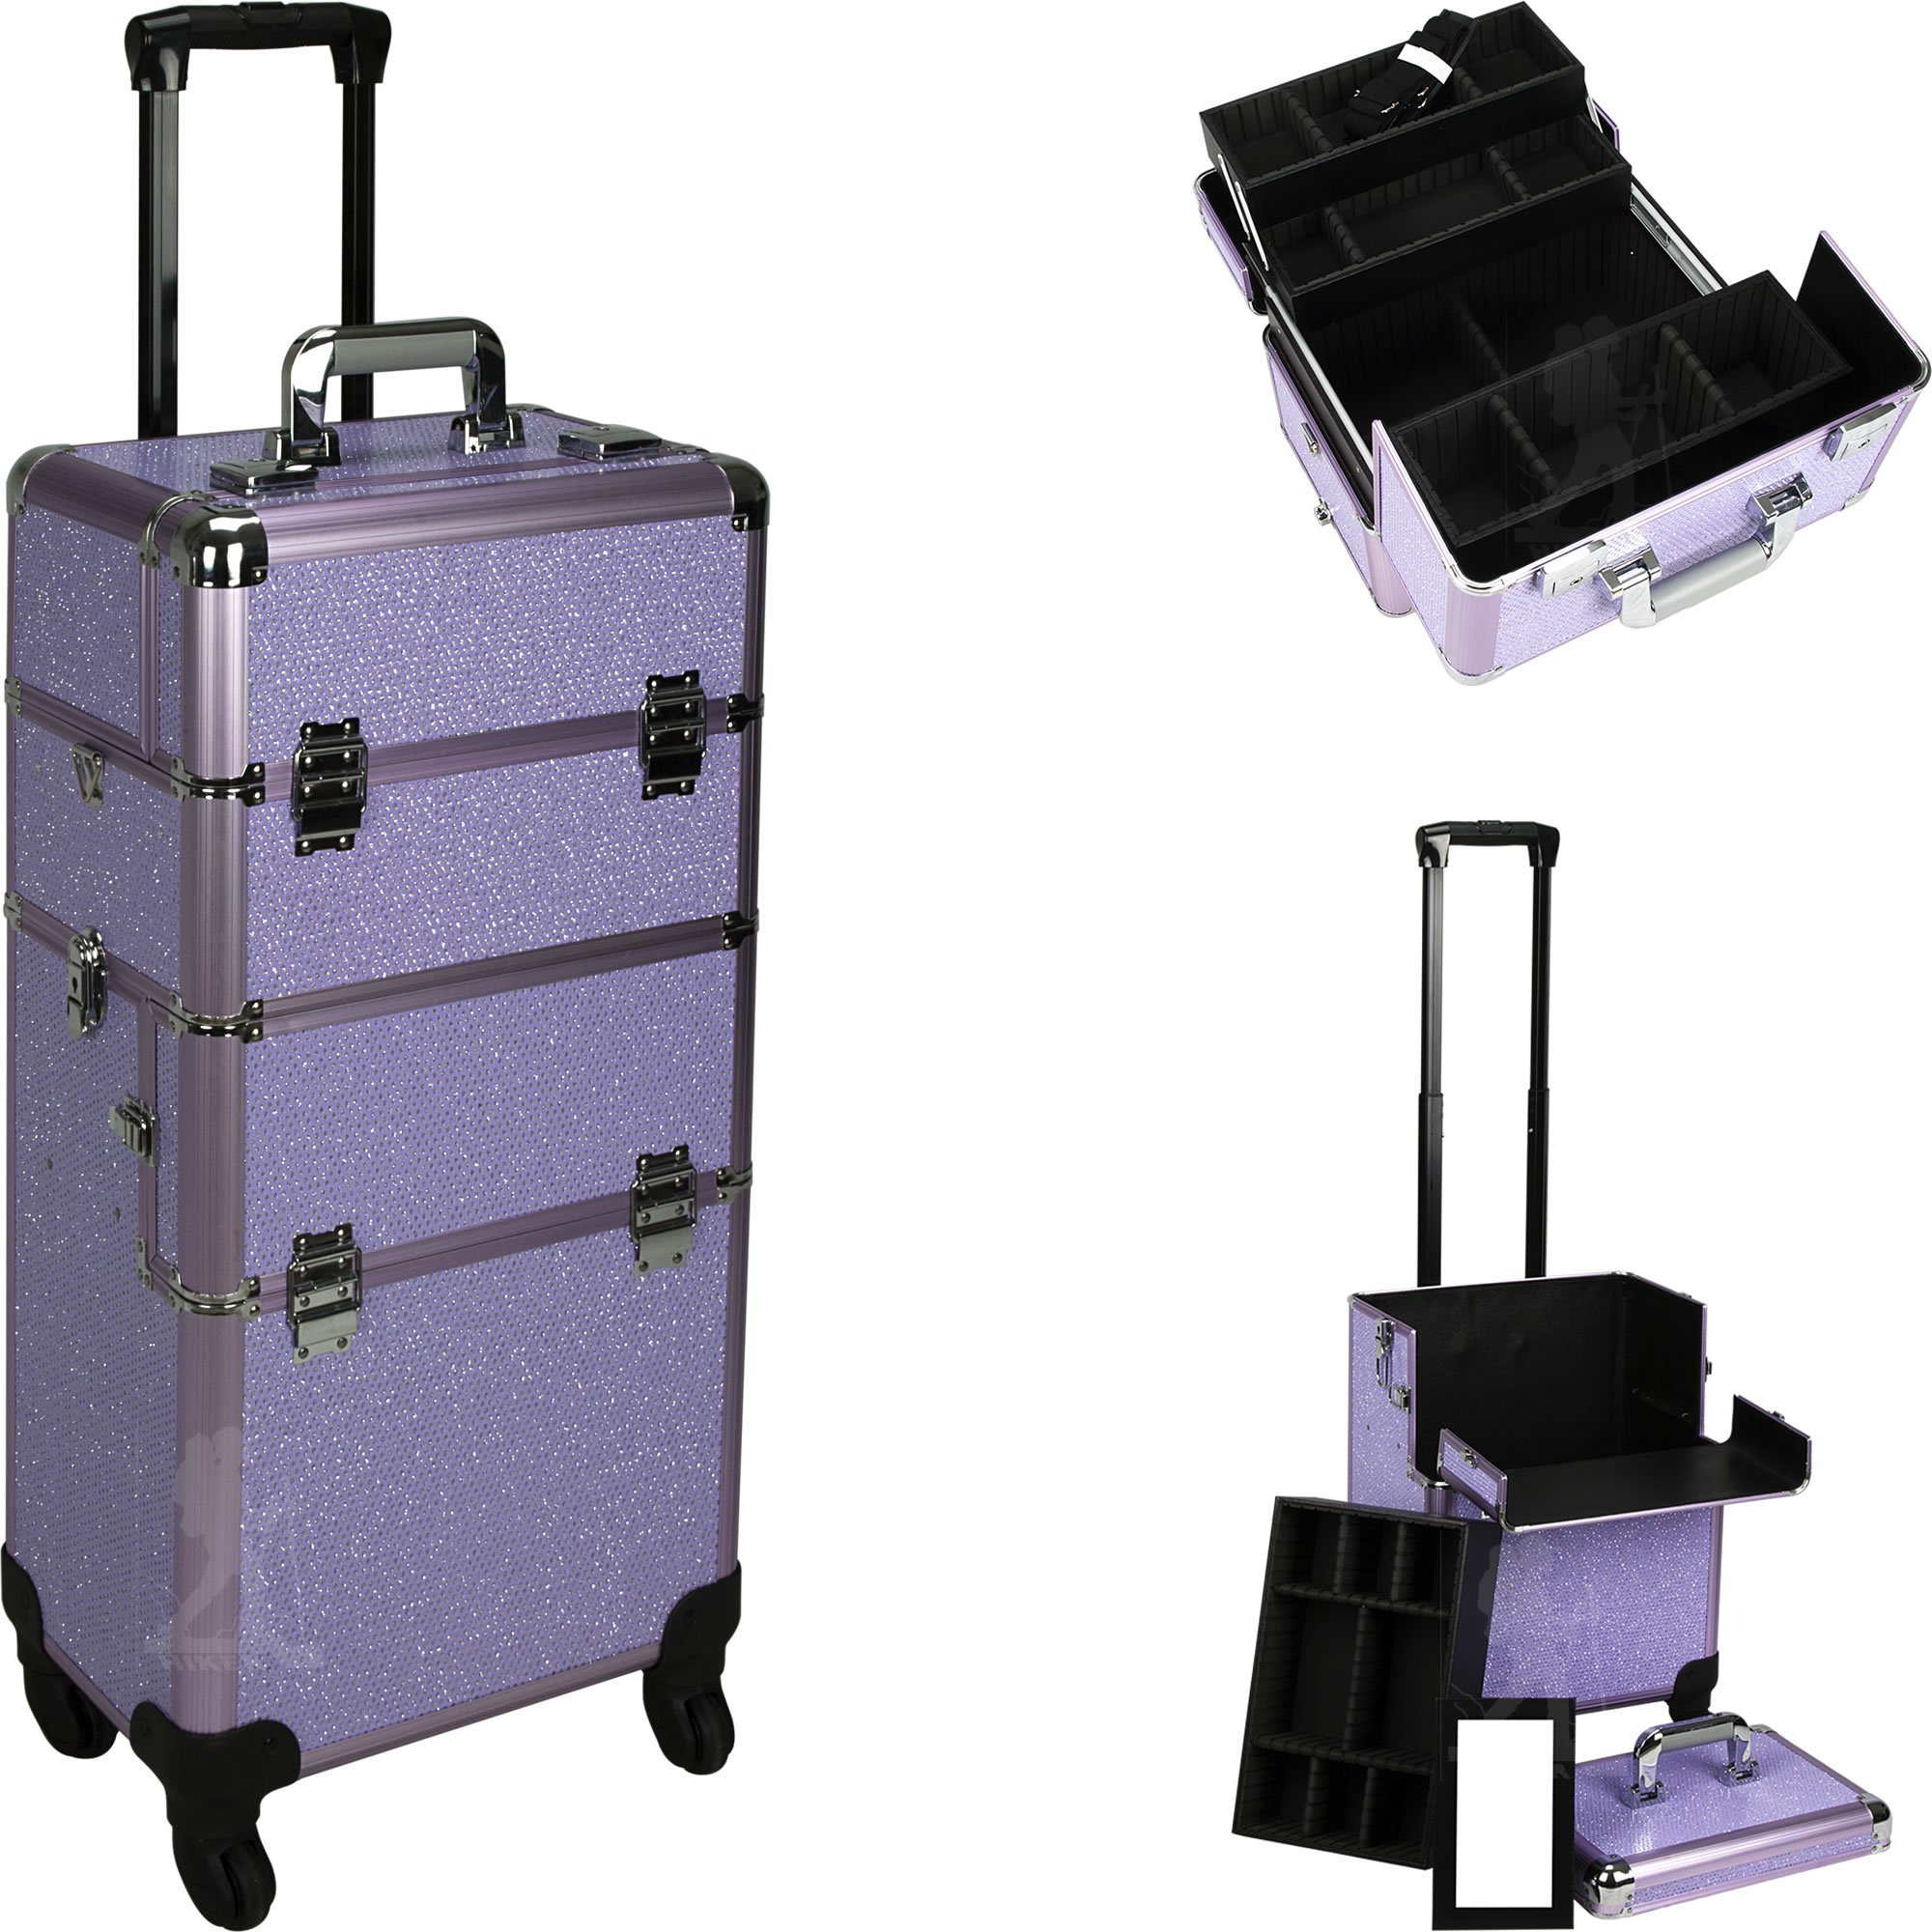 HIKER Makeup Rolling Case HK6501 2 in 1 Hair Stylist Organizer, 3 Slide and 1 Removable Tray, 4 Wheel Spinner, Locking with Mirror, Extra Lid and Shoulder Strap, Purple Krystal by Hiker